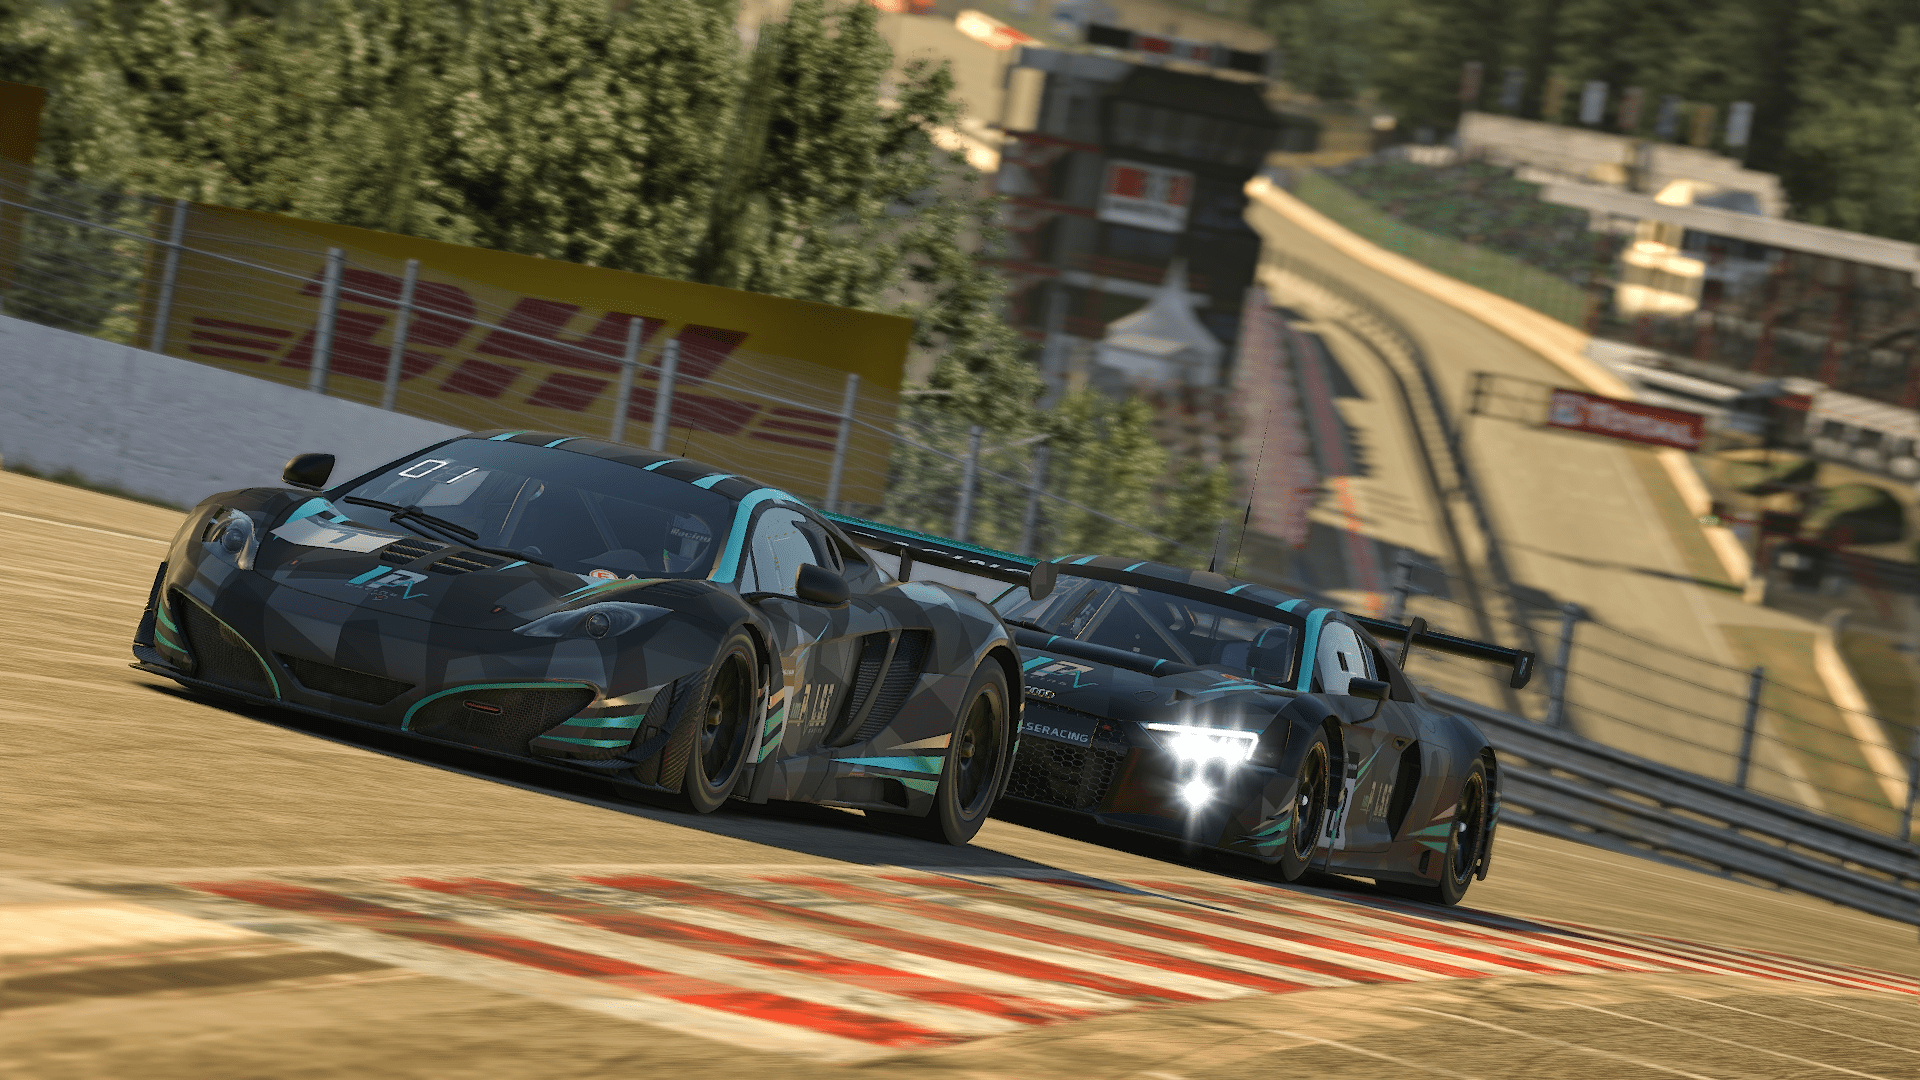 iRacing 24h of Spa with Audi in Radillion Top